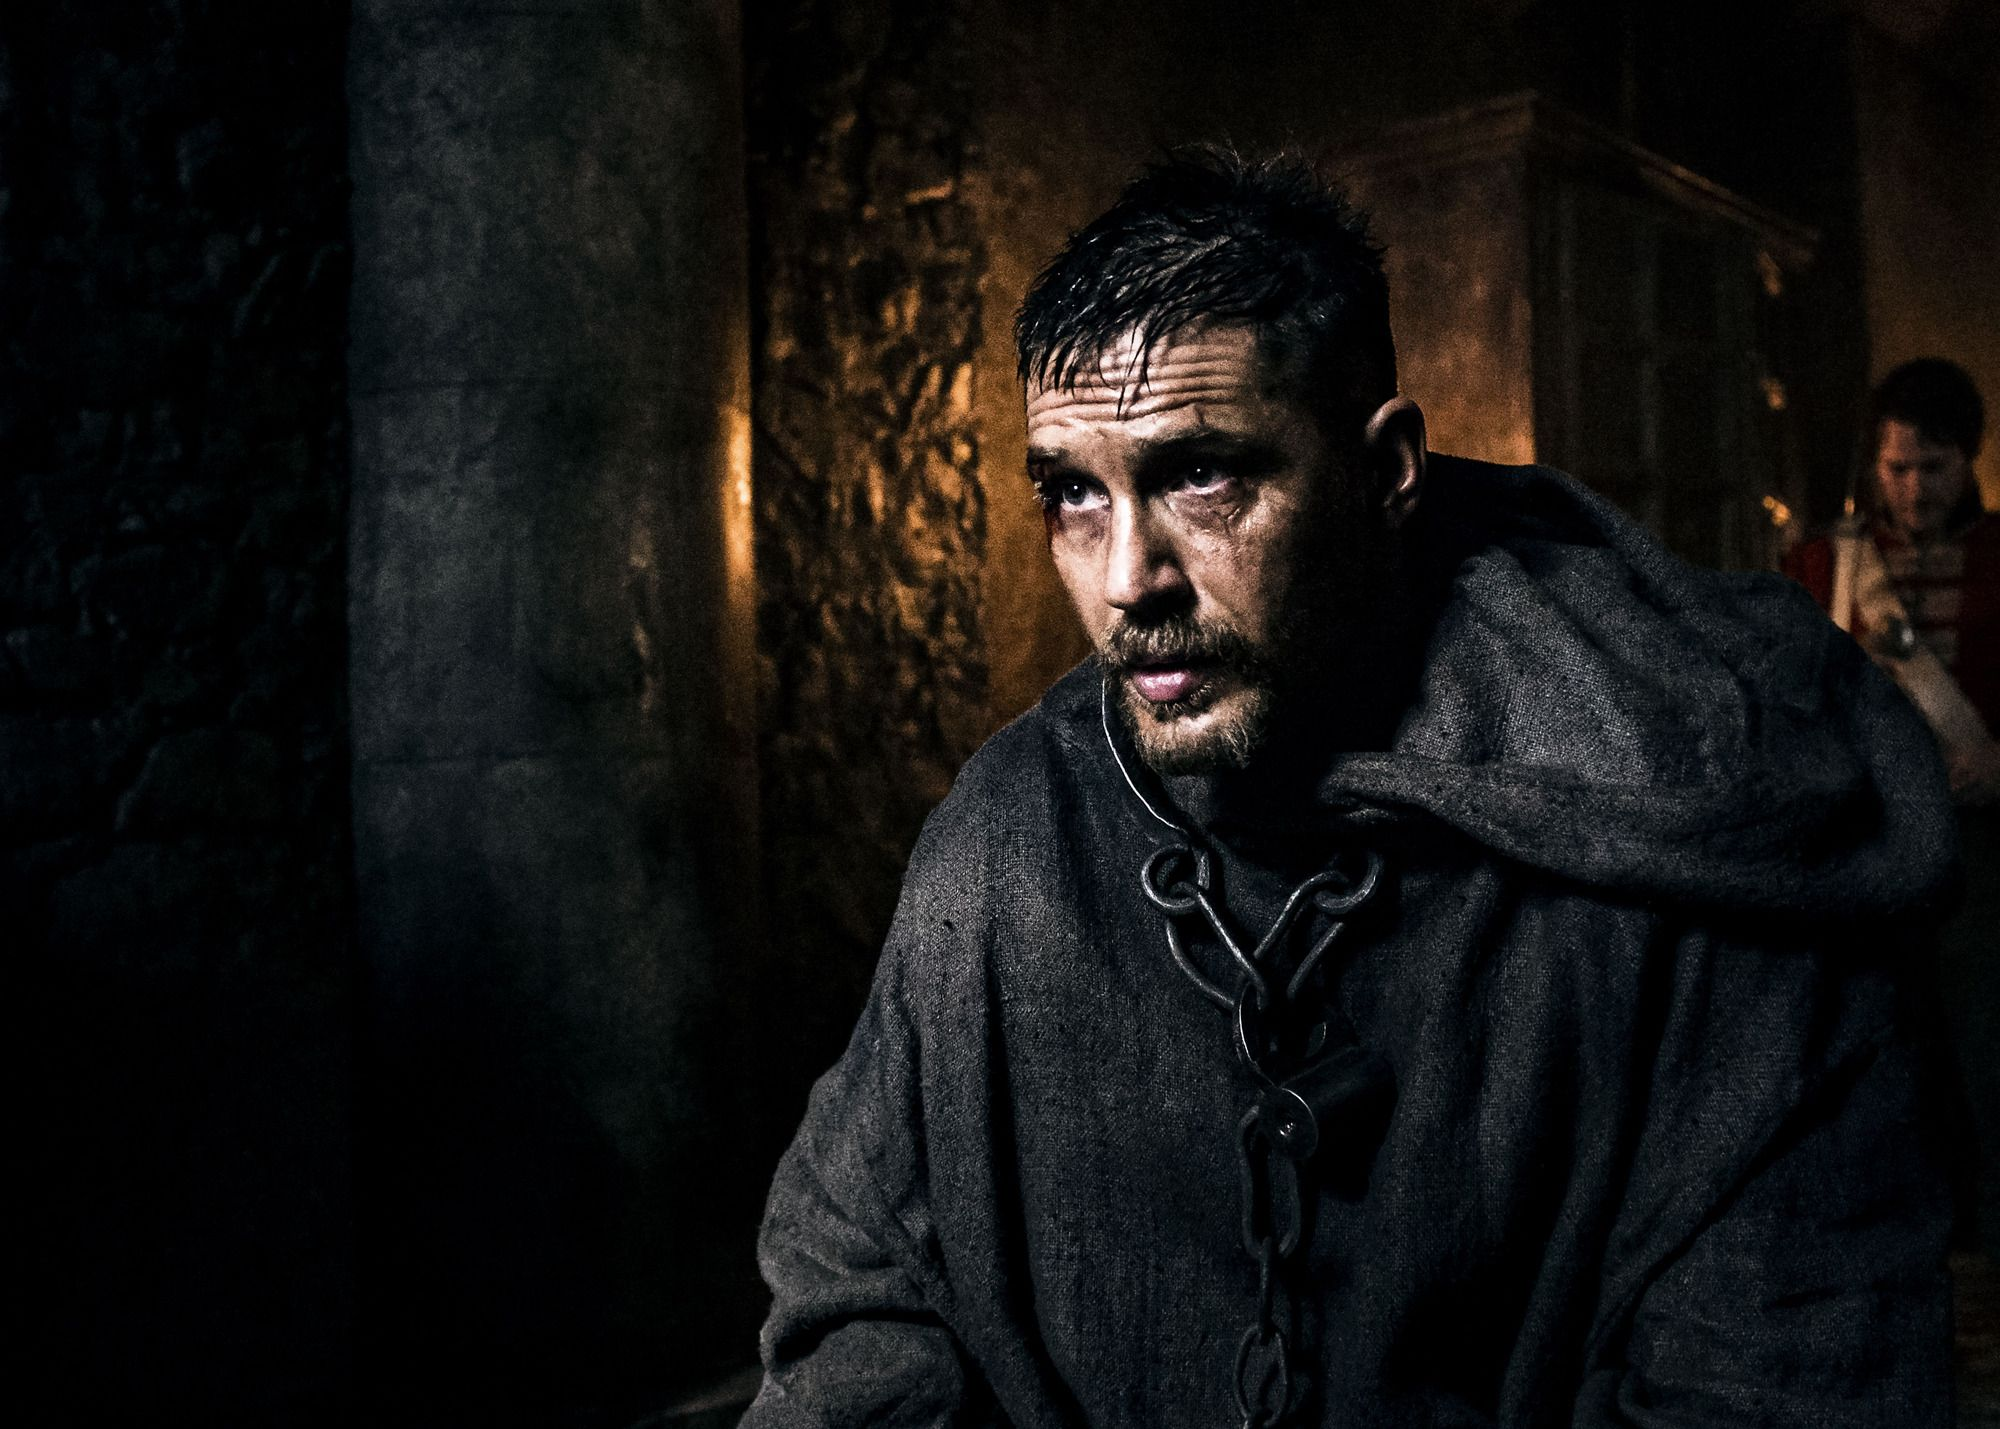 Taboo season 2 - Release date, episodes, cast and plot